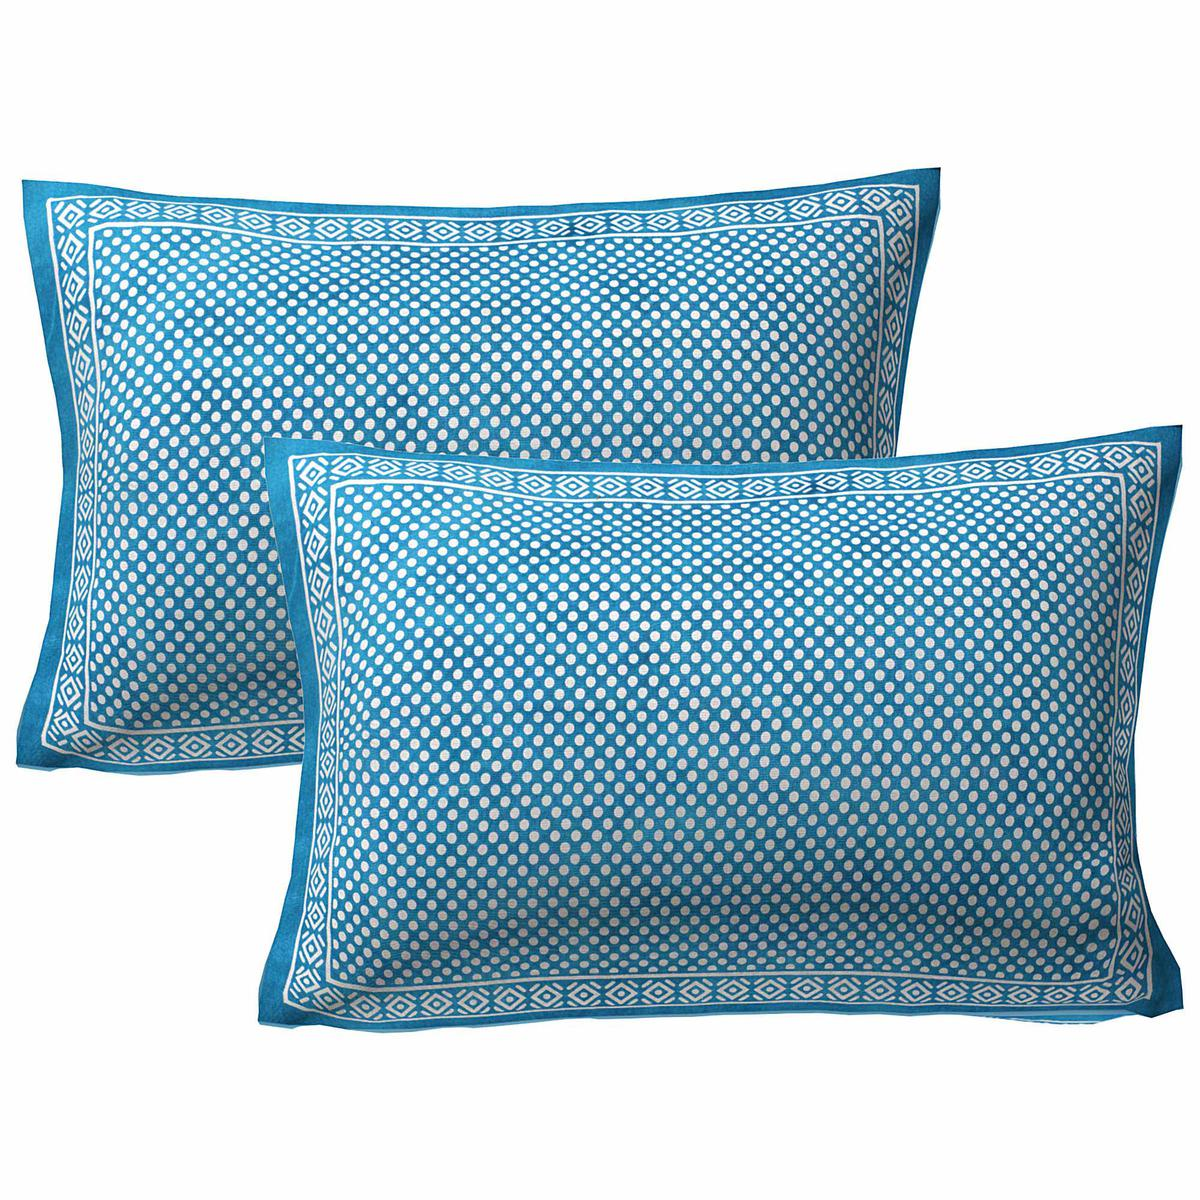 AJ Home - Green Colored 100% Cotton Printed Pillow Cover Set (2 Pieces)